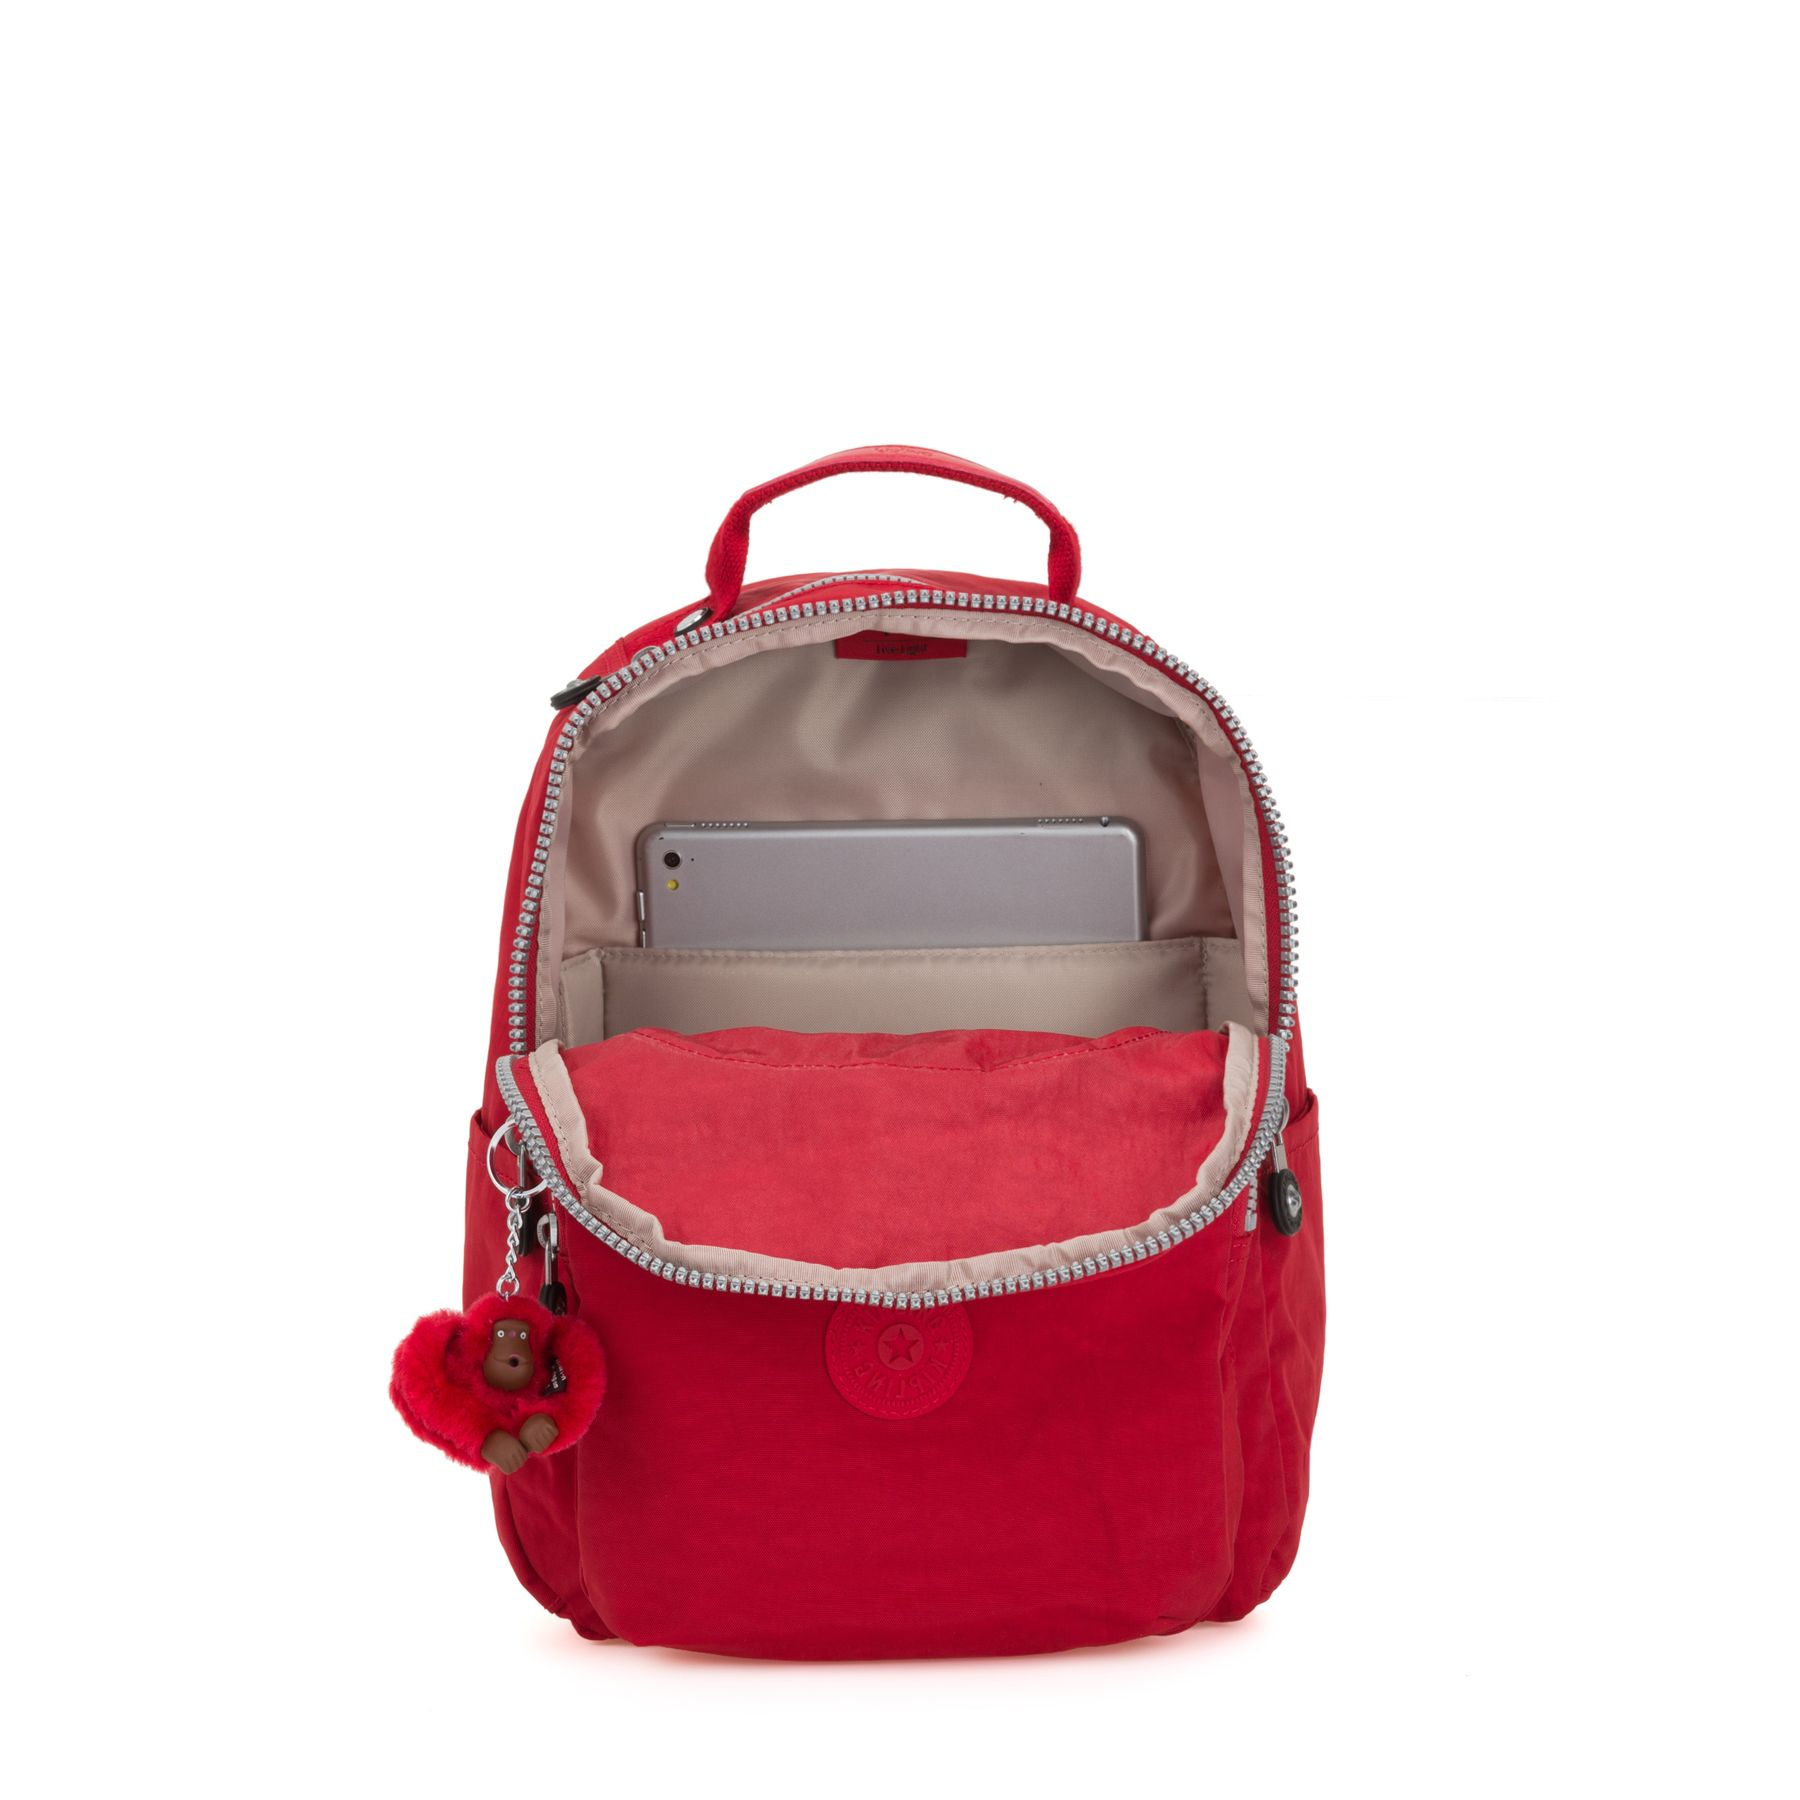 SEOUL GO S SCHOOL BAGS by Kipling - Inside view